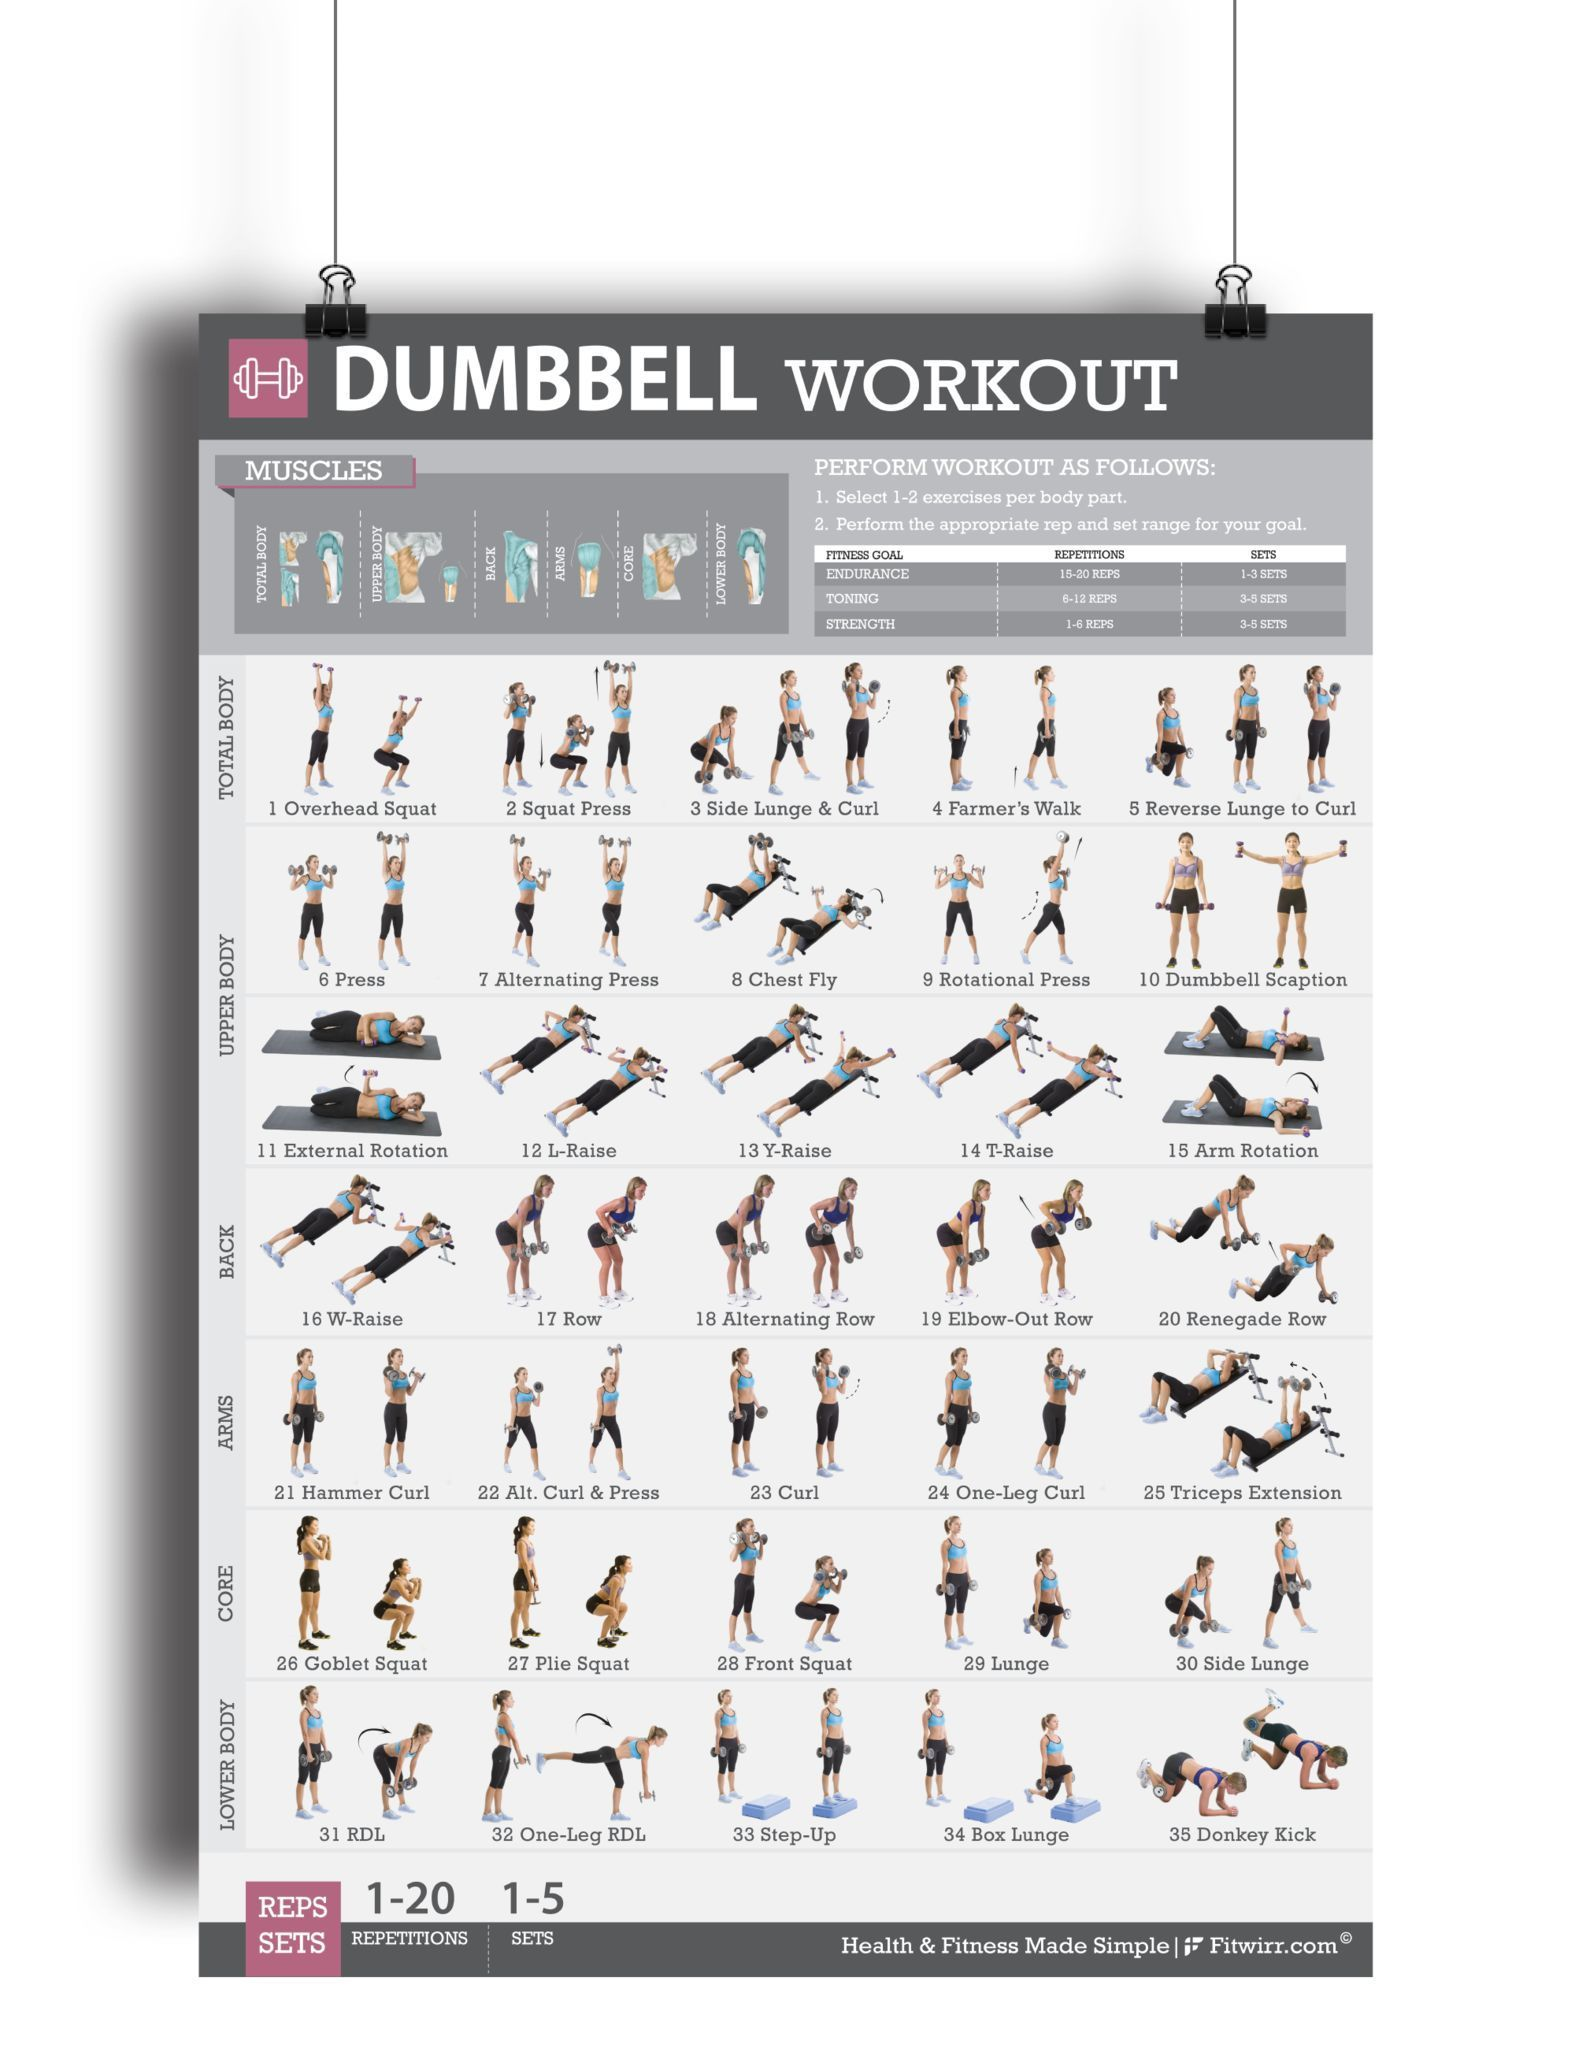 Dumbbell Exercise Workout Poster - Laminated - 19x27 #dumbbellexercises